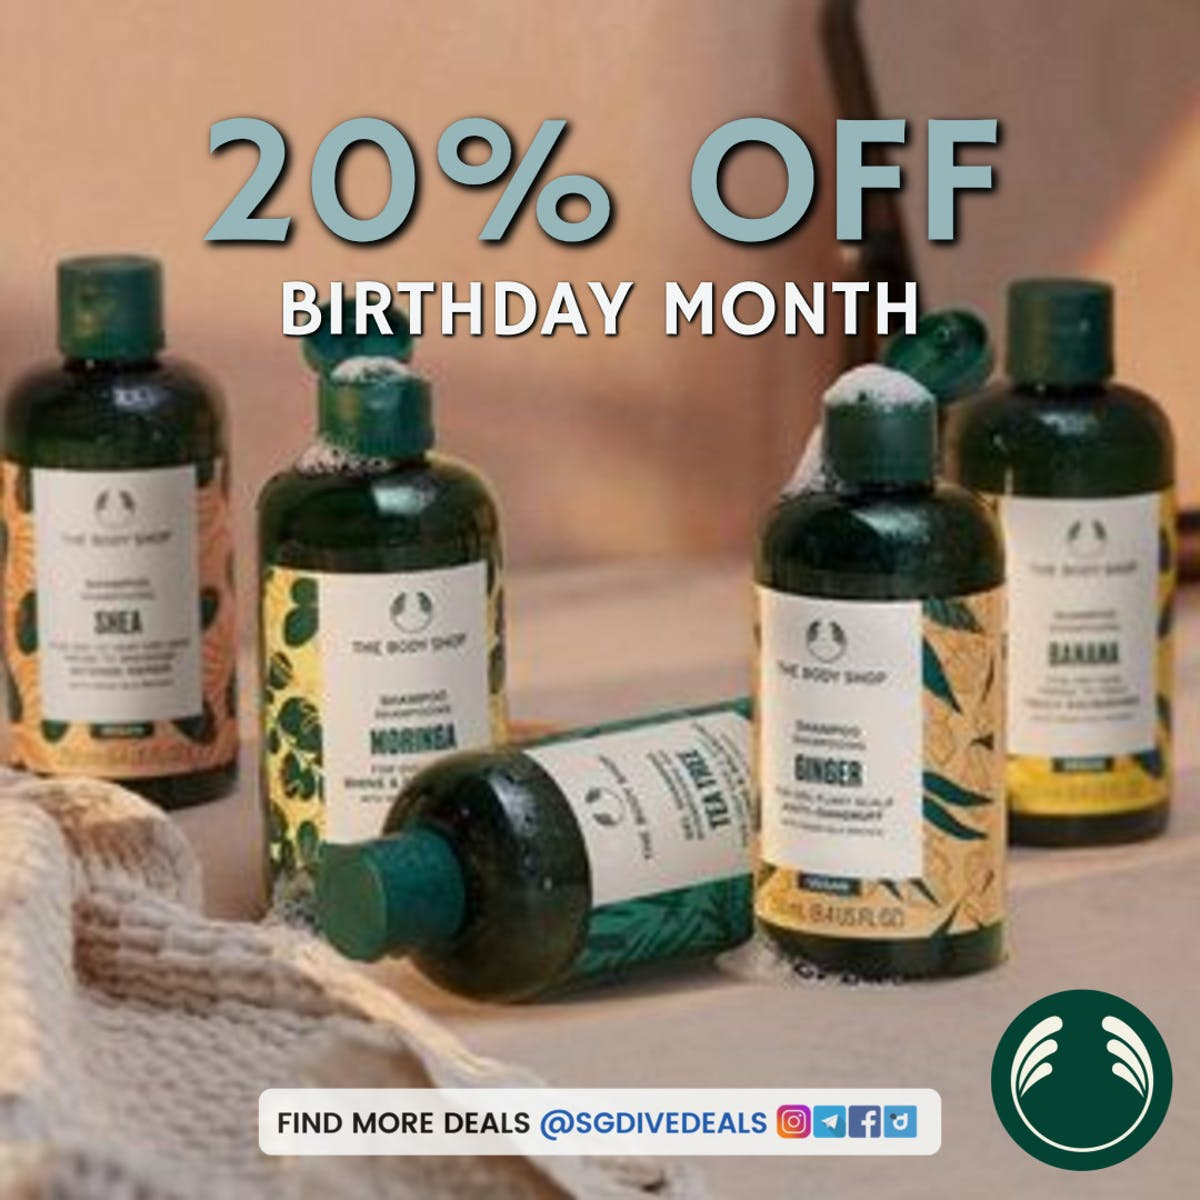 20% off body shop skincare products